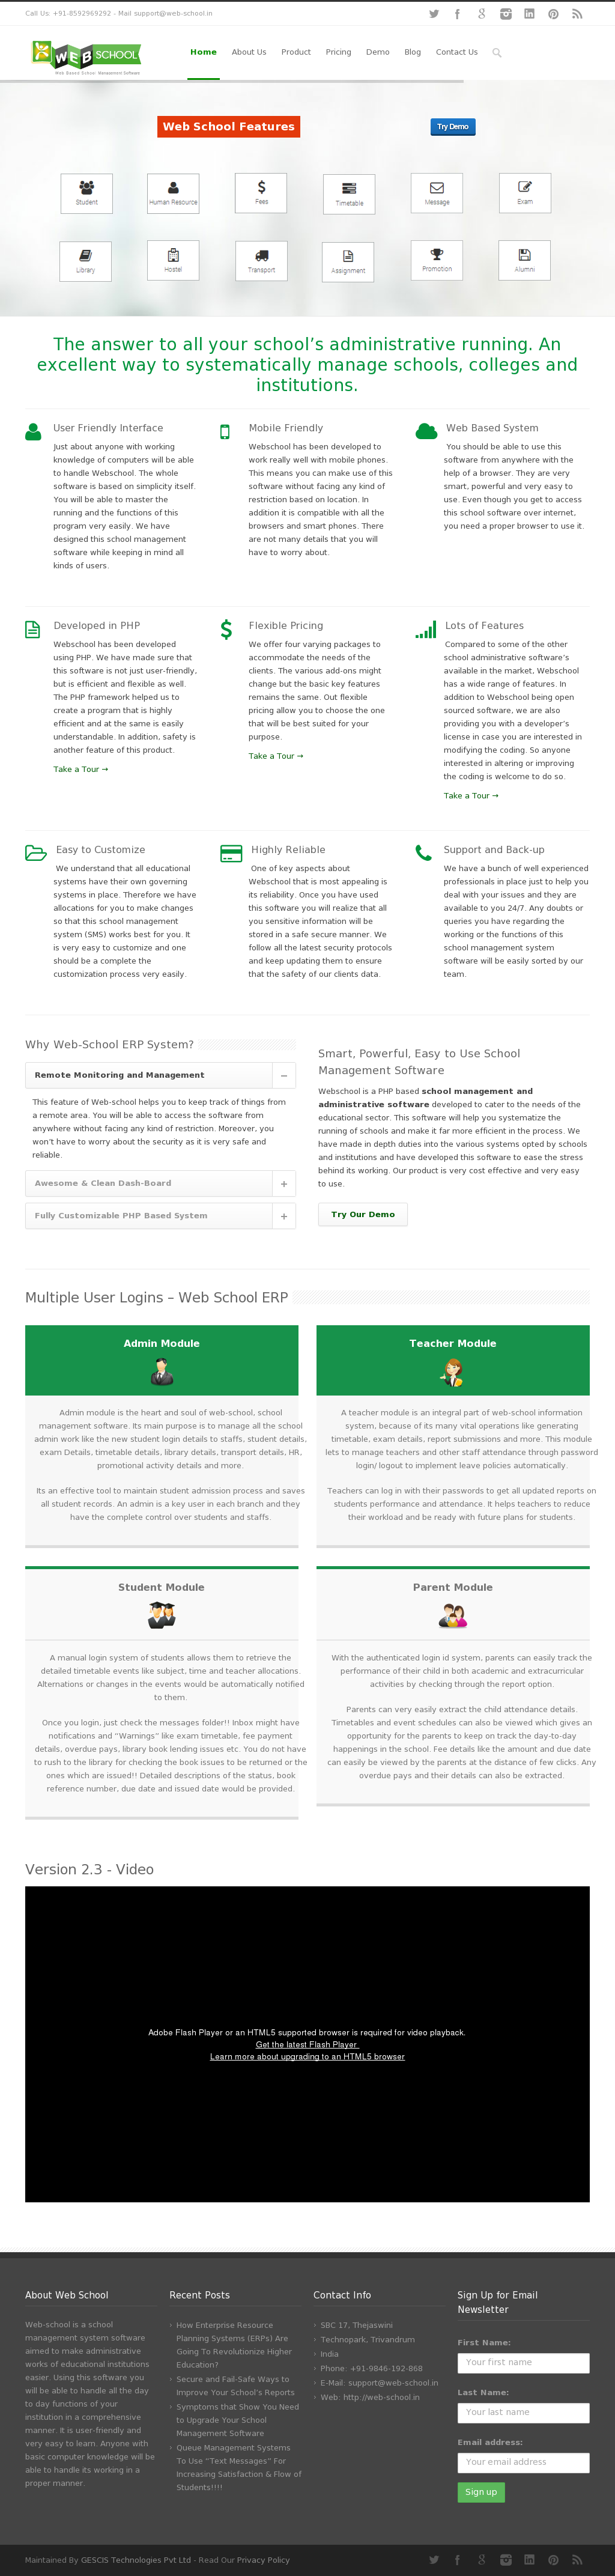 Web-school Competitors, Revenue and Employees - Owler